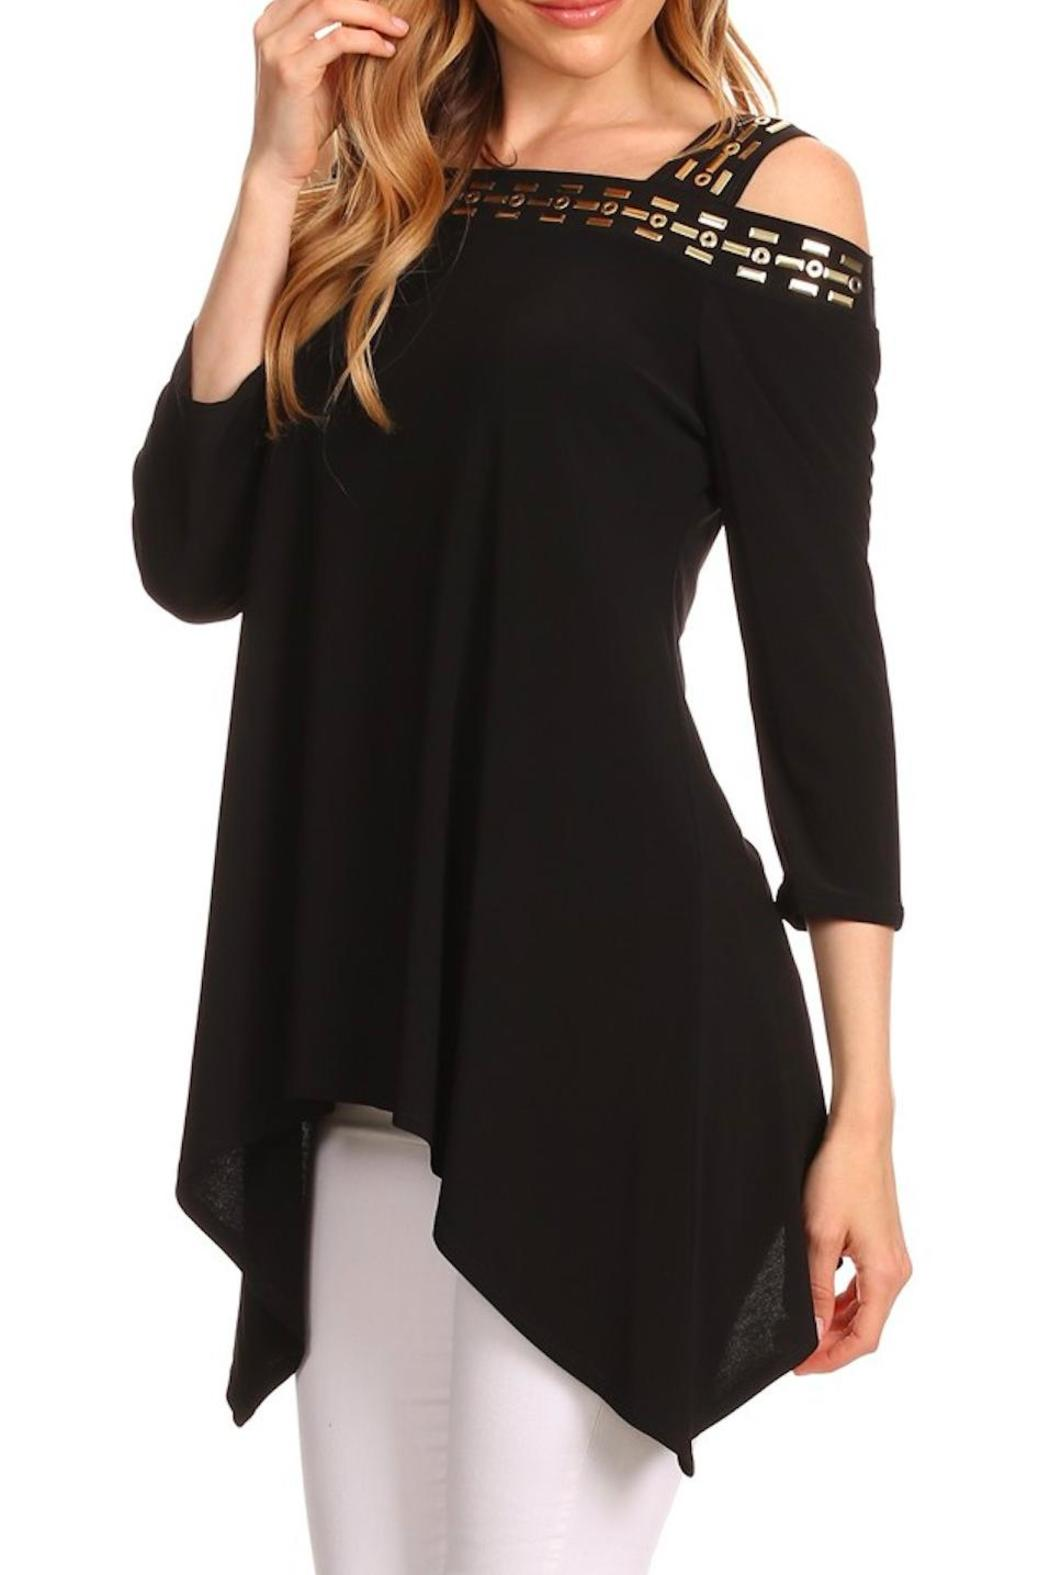 Karen T Designs 3/4 Sleeve Tunic - Side Cropped Image